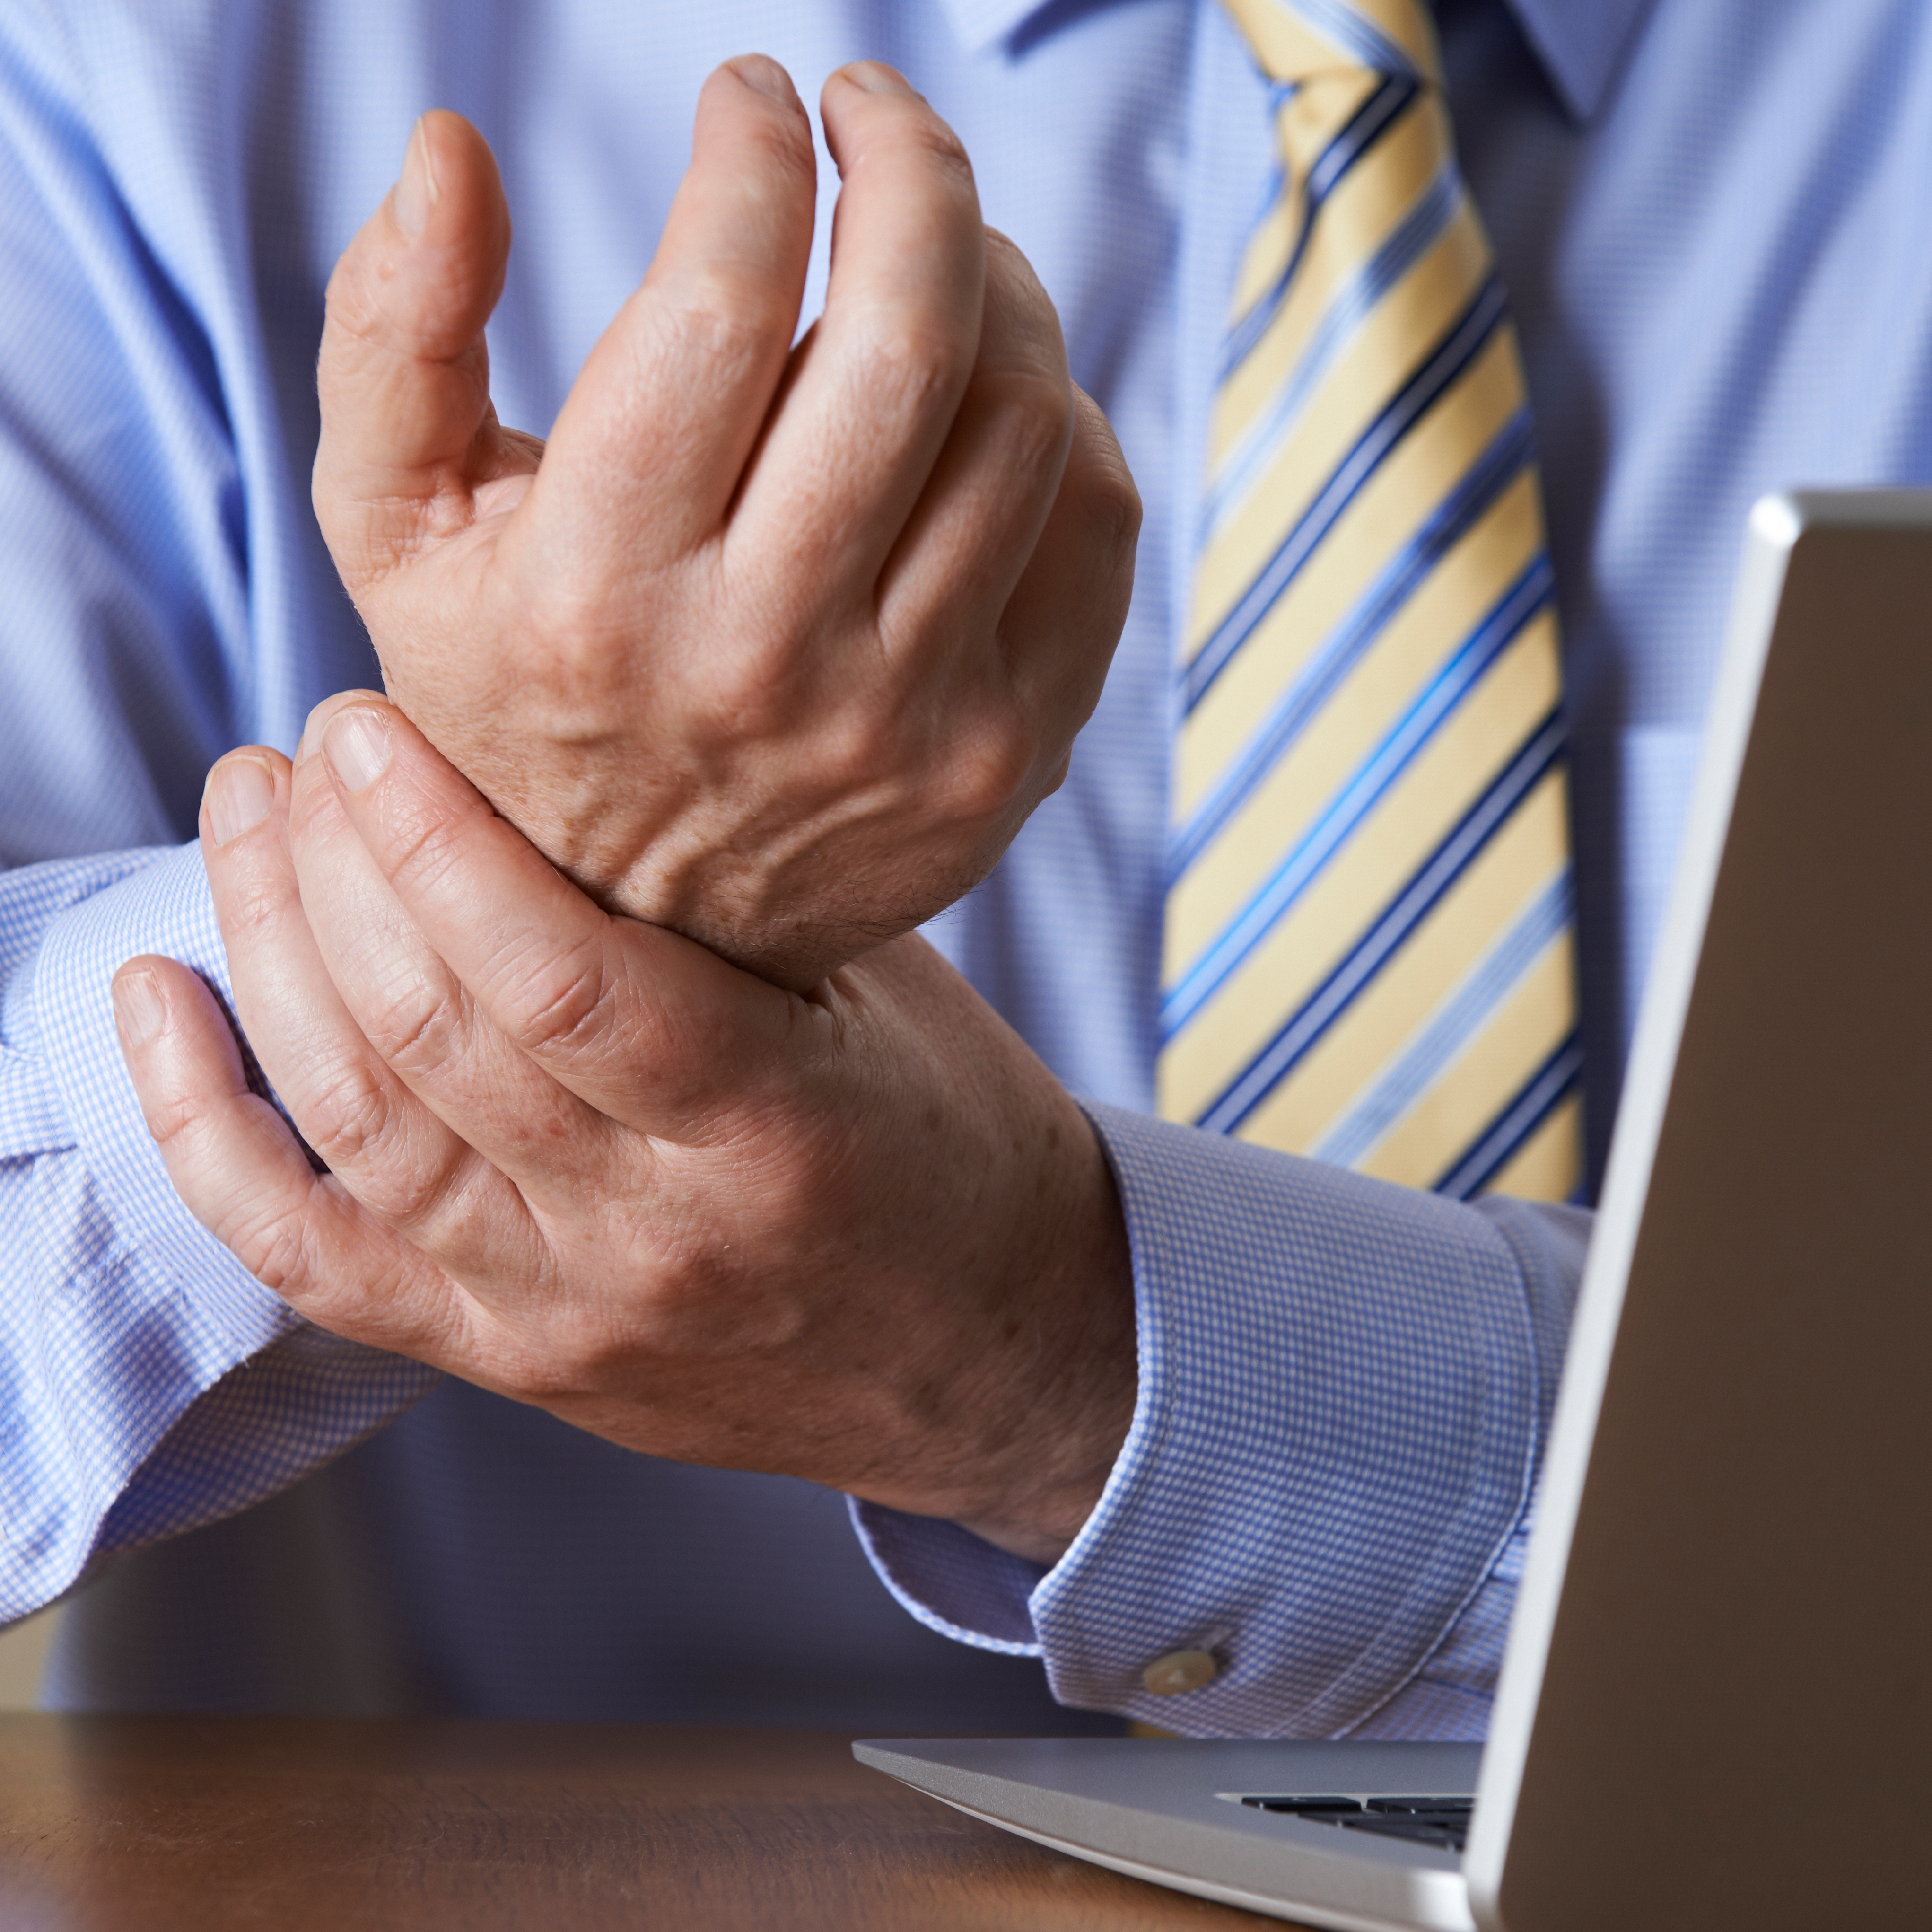 a business man sitting at a computer holding his wrist because of pain and injury